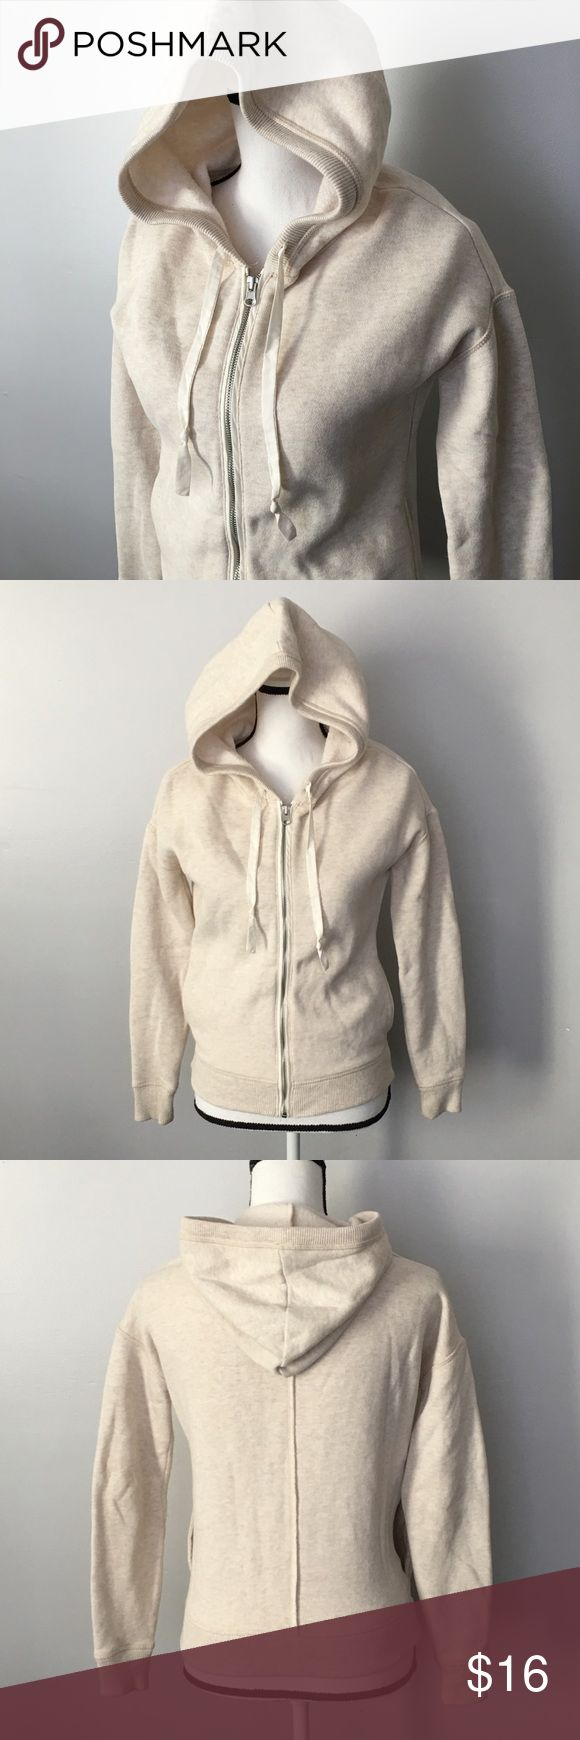 "EUC Aerie Cream Zip Up Hooded Sweatshirt Hoodie Aerie Zip Up Hooded Sweatshirt Size XS Cream Excellent Used Condition 19.5"" armpit to armpit (measured flat) Approx 21"" long aerie Tops Sweatshirts & Hoodies"